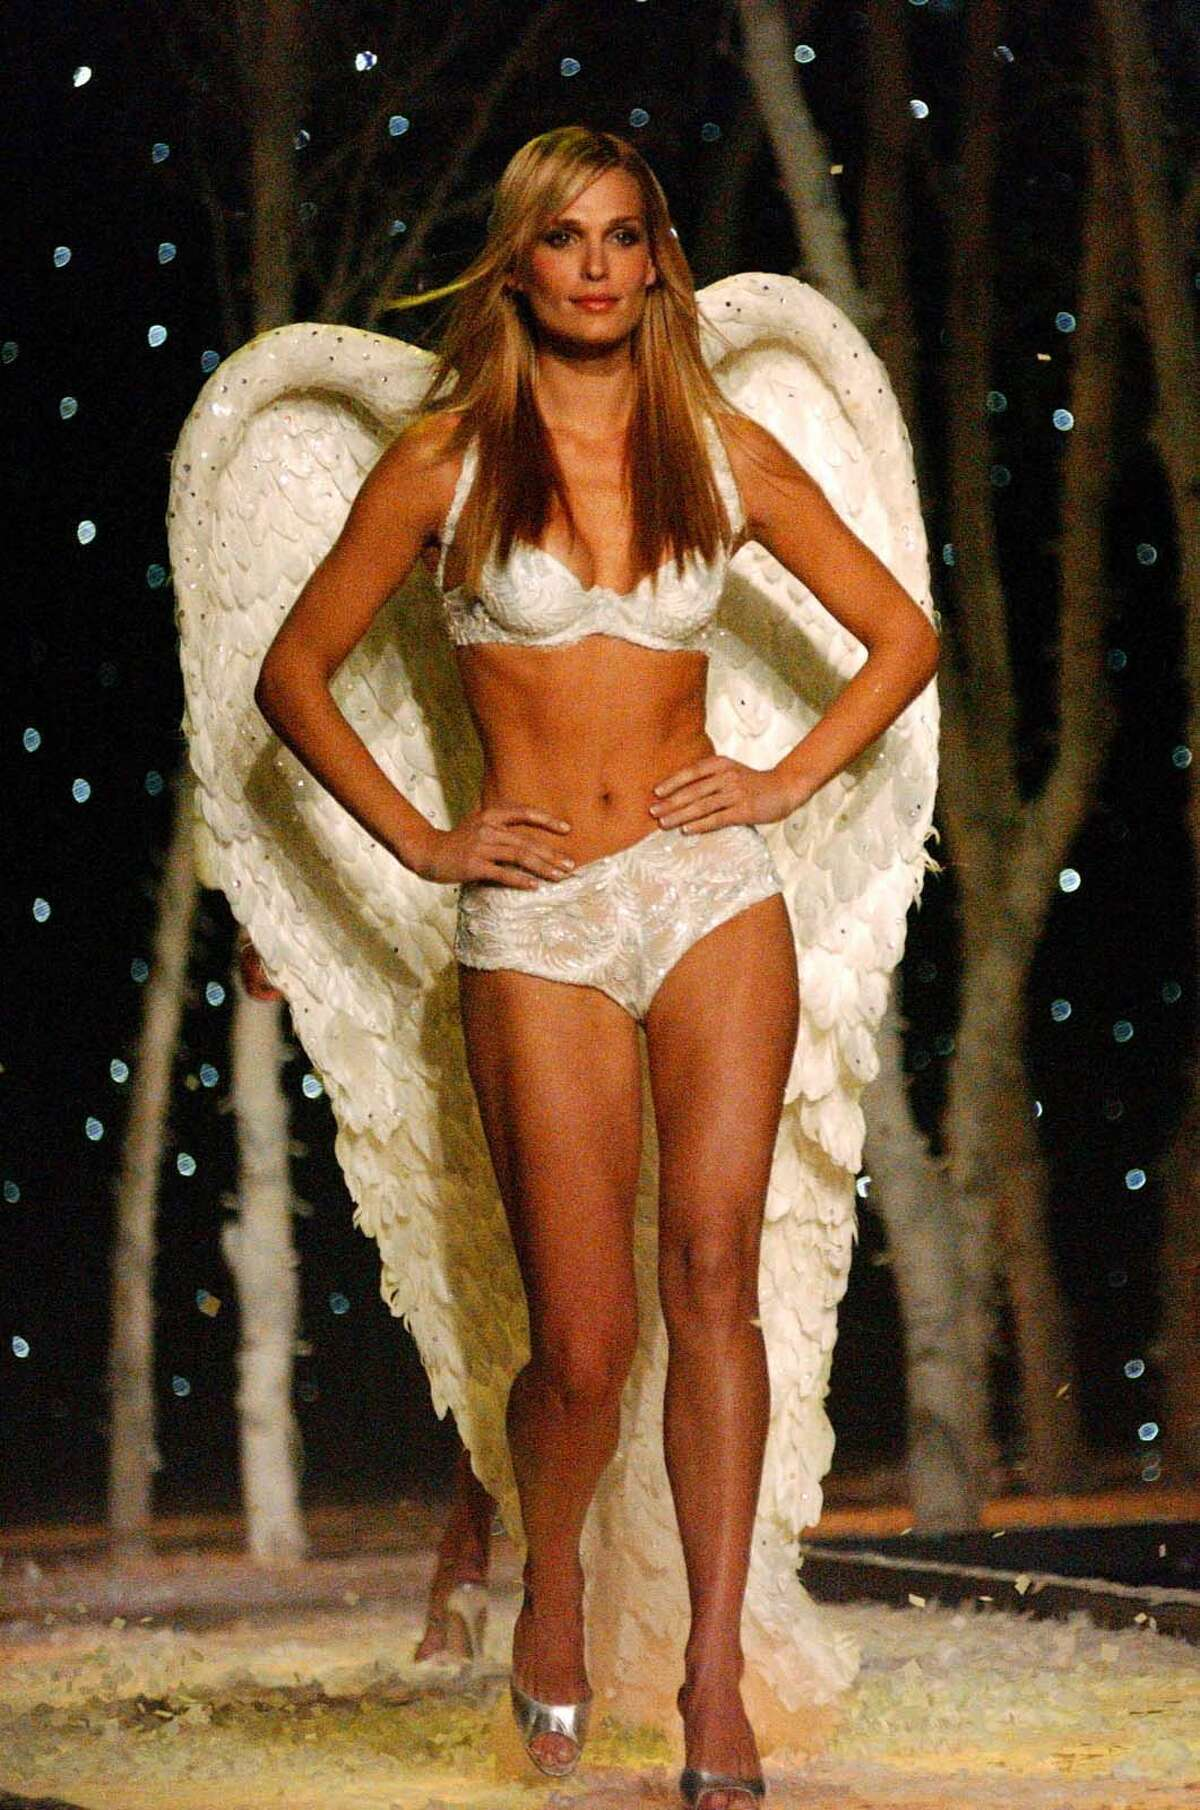 Molly Sims wears a set of angel wings as she models fashions in the Victoria's Secret show Tuesday, Nov. 13, 2001, in New York.